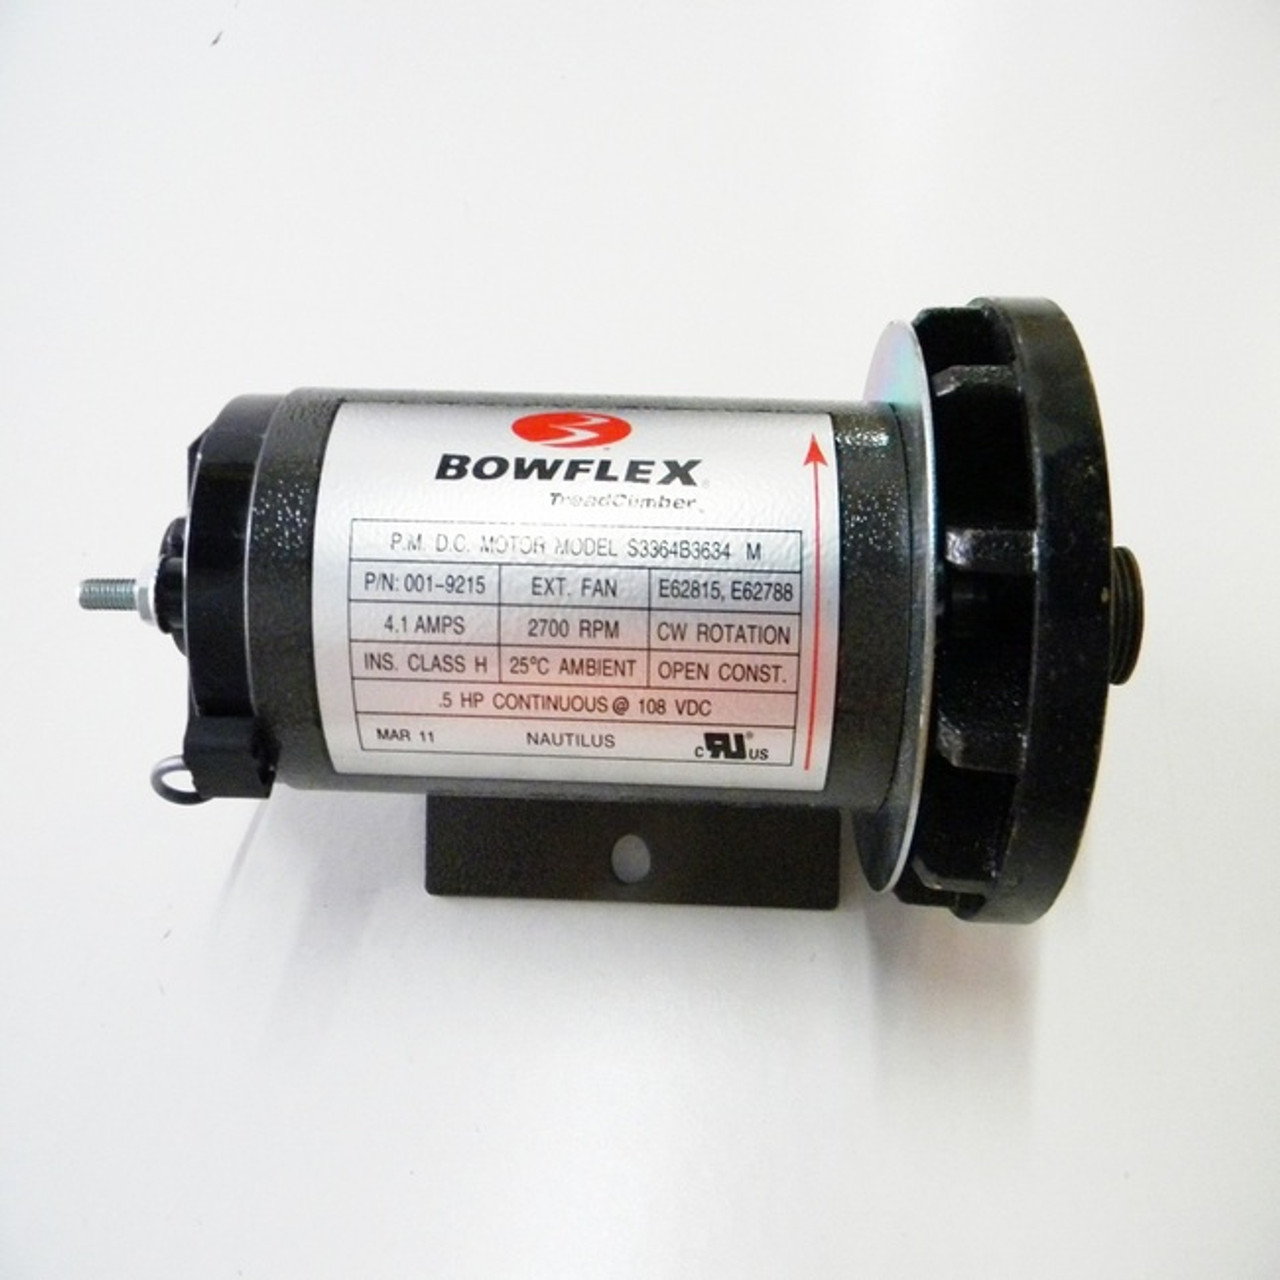 BowFlex Treadclimber Model TC6000 Drive Motor Part 12710